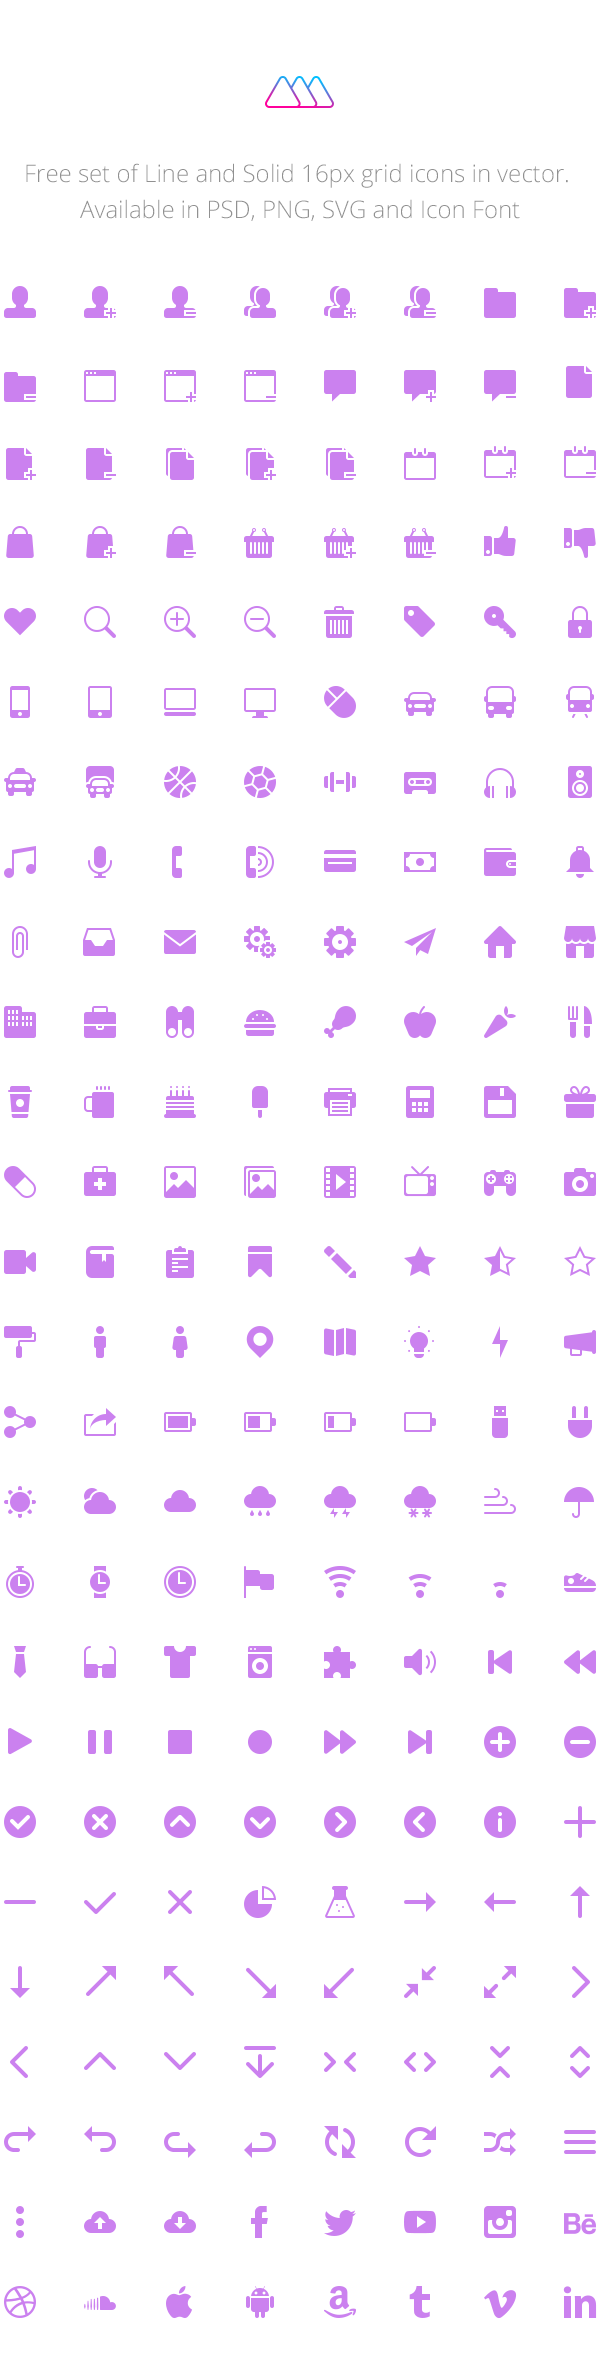 210 Free Solid Icons